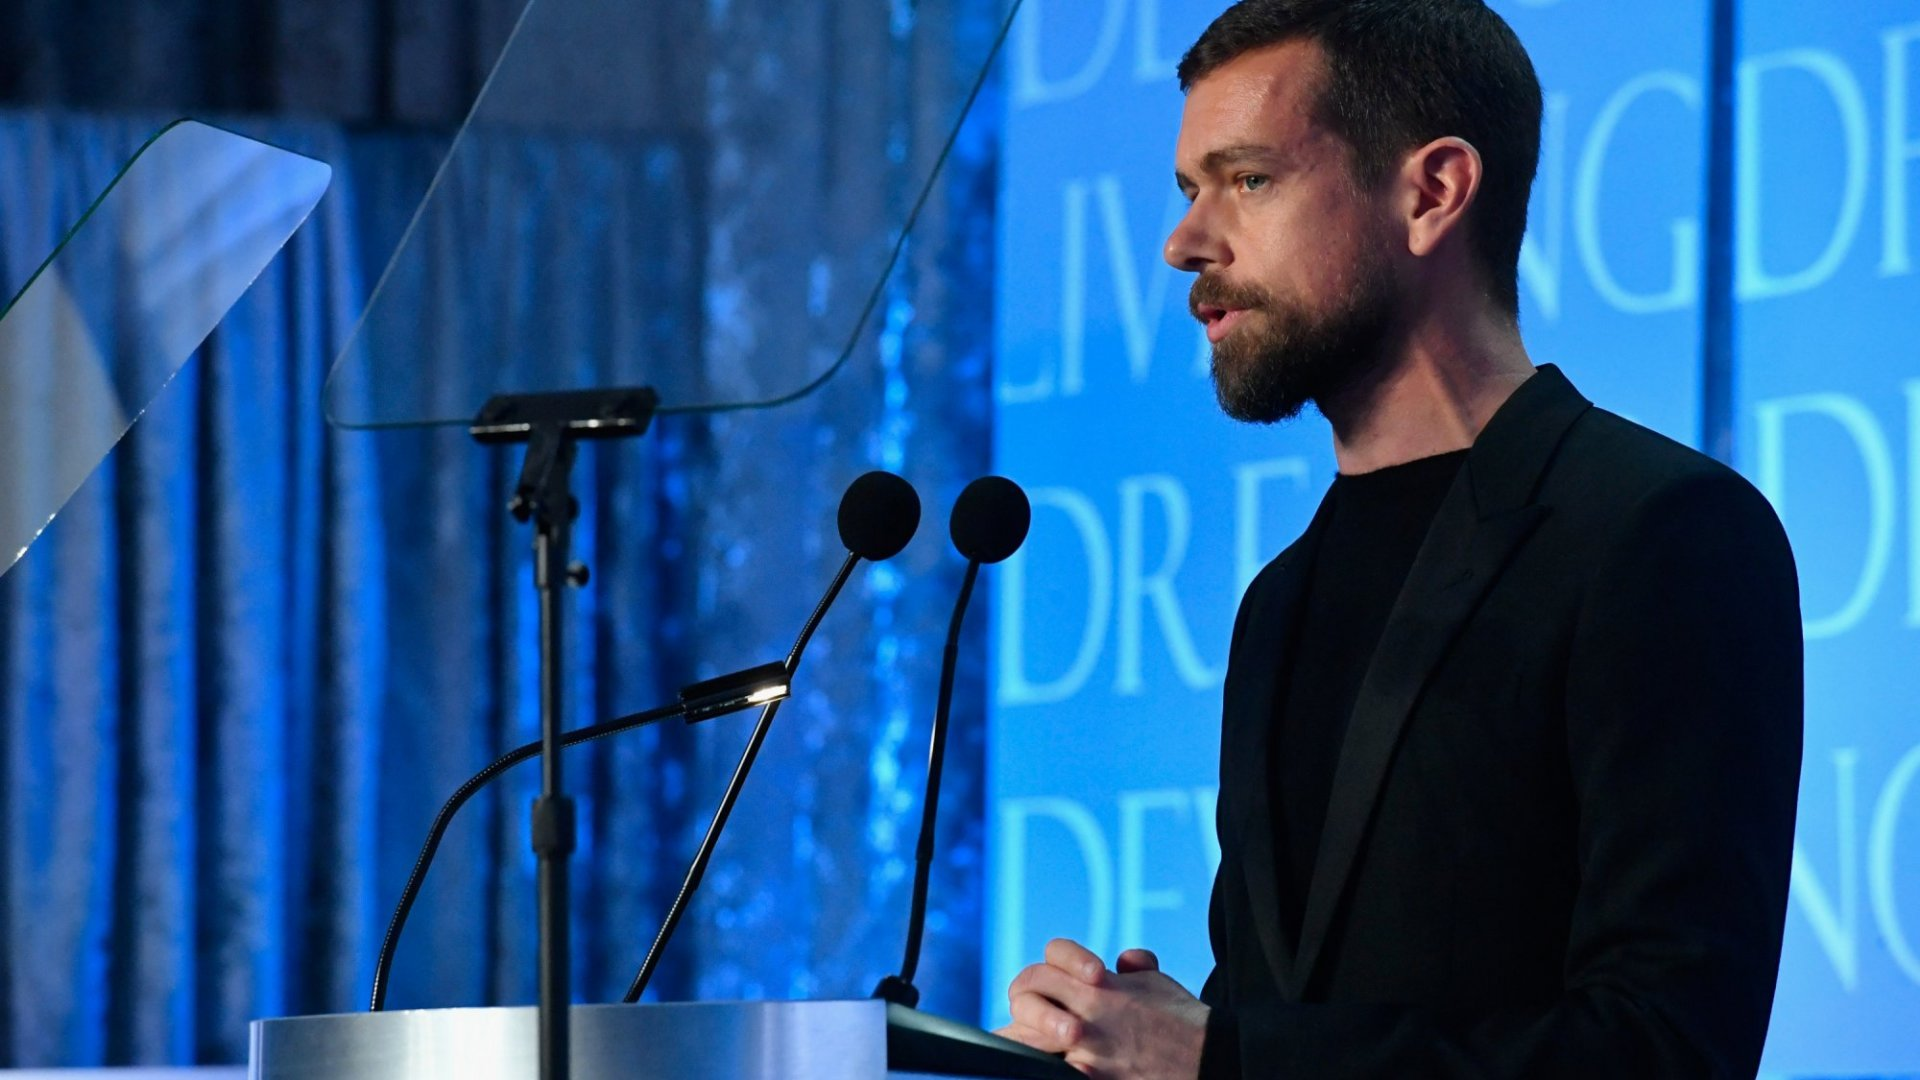 Twitter CEO Jack Dorsey Is Considering Adding an Edit Button for Tweets